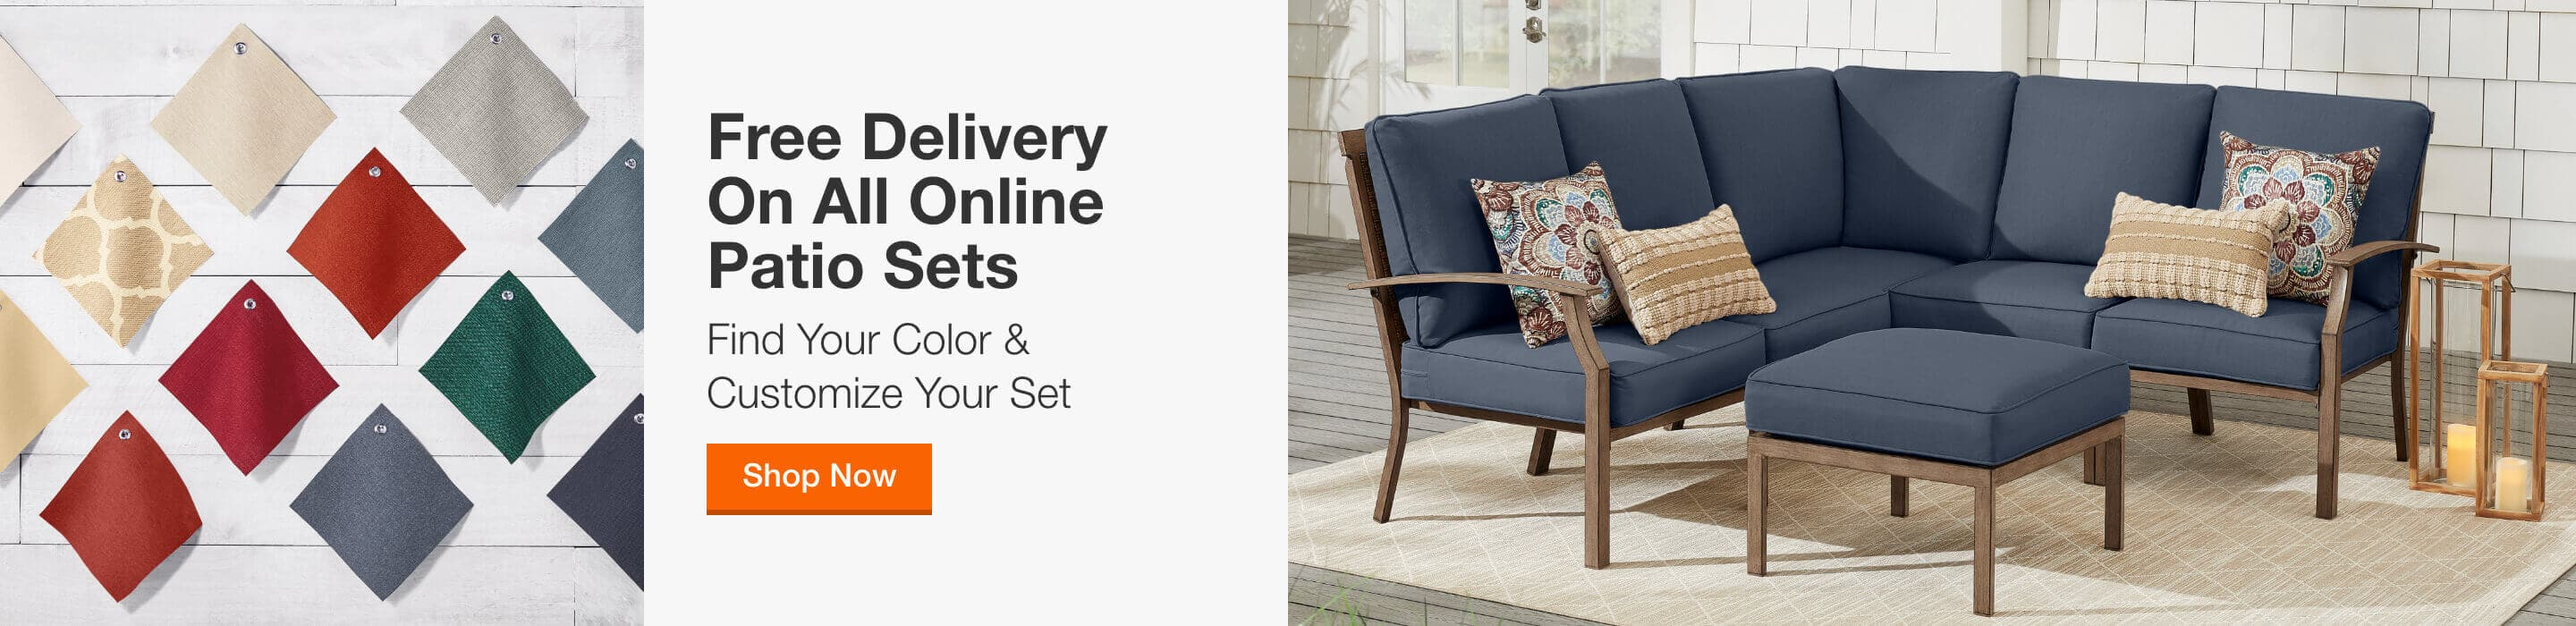 FREE DELIVERY ON ALL ONLINE PATIO SETS - Find Your Color & Customize Your Set. Shop Now